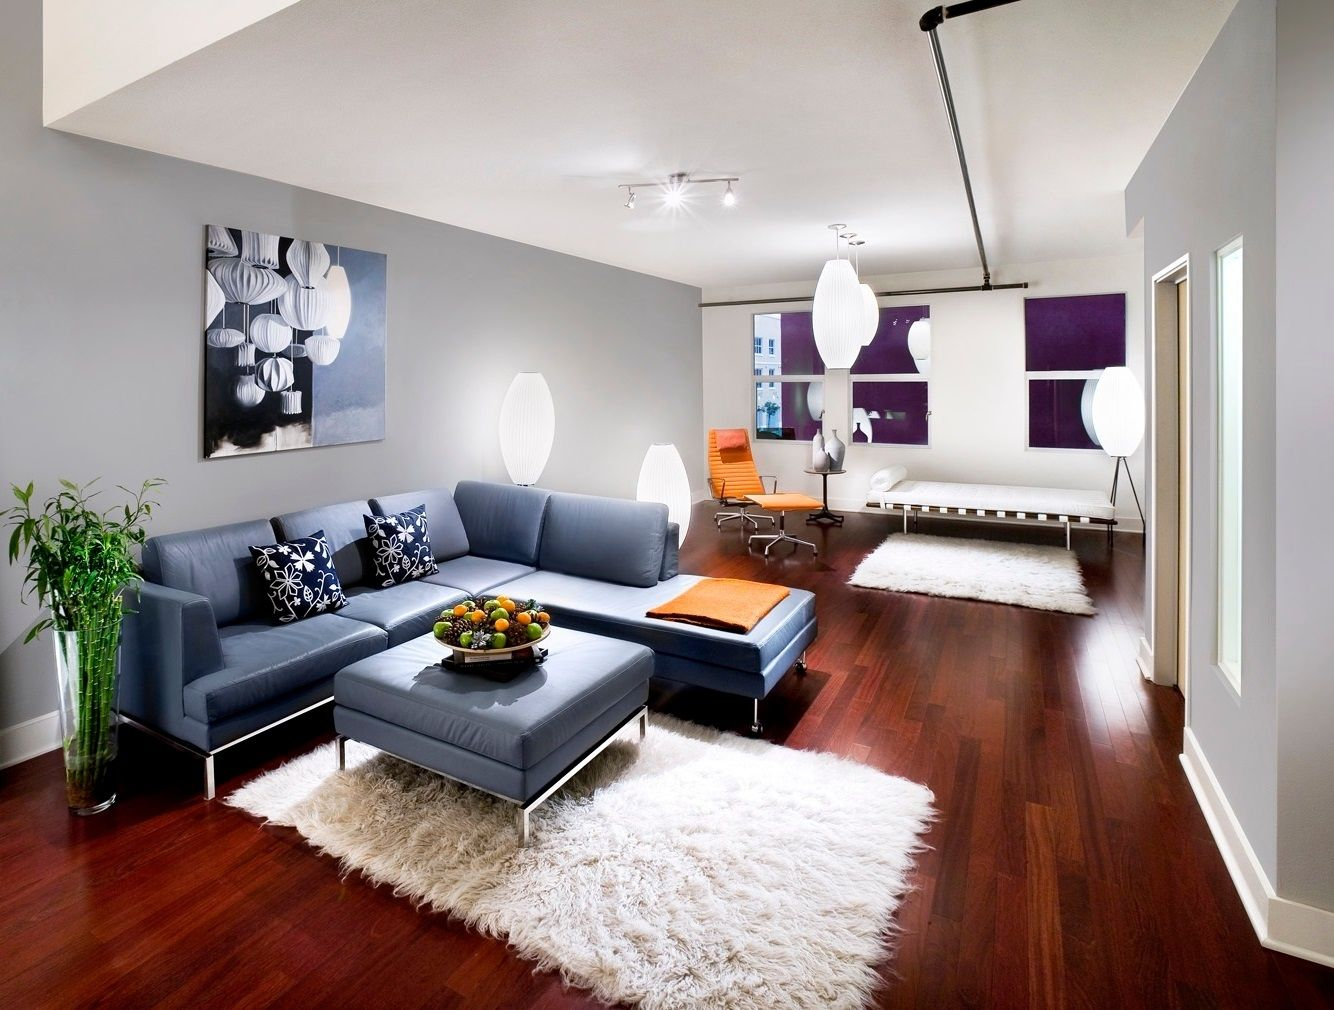 condo living room interior design - 1000+ images about POJS // partment design inspiration on ...